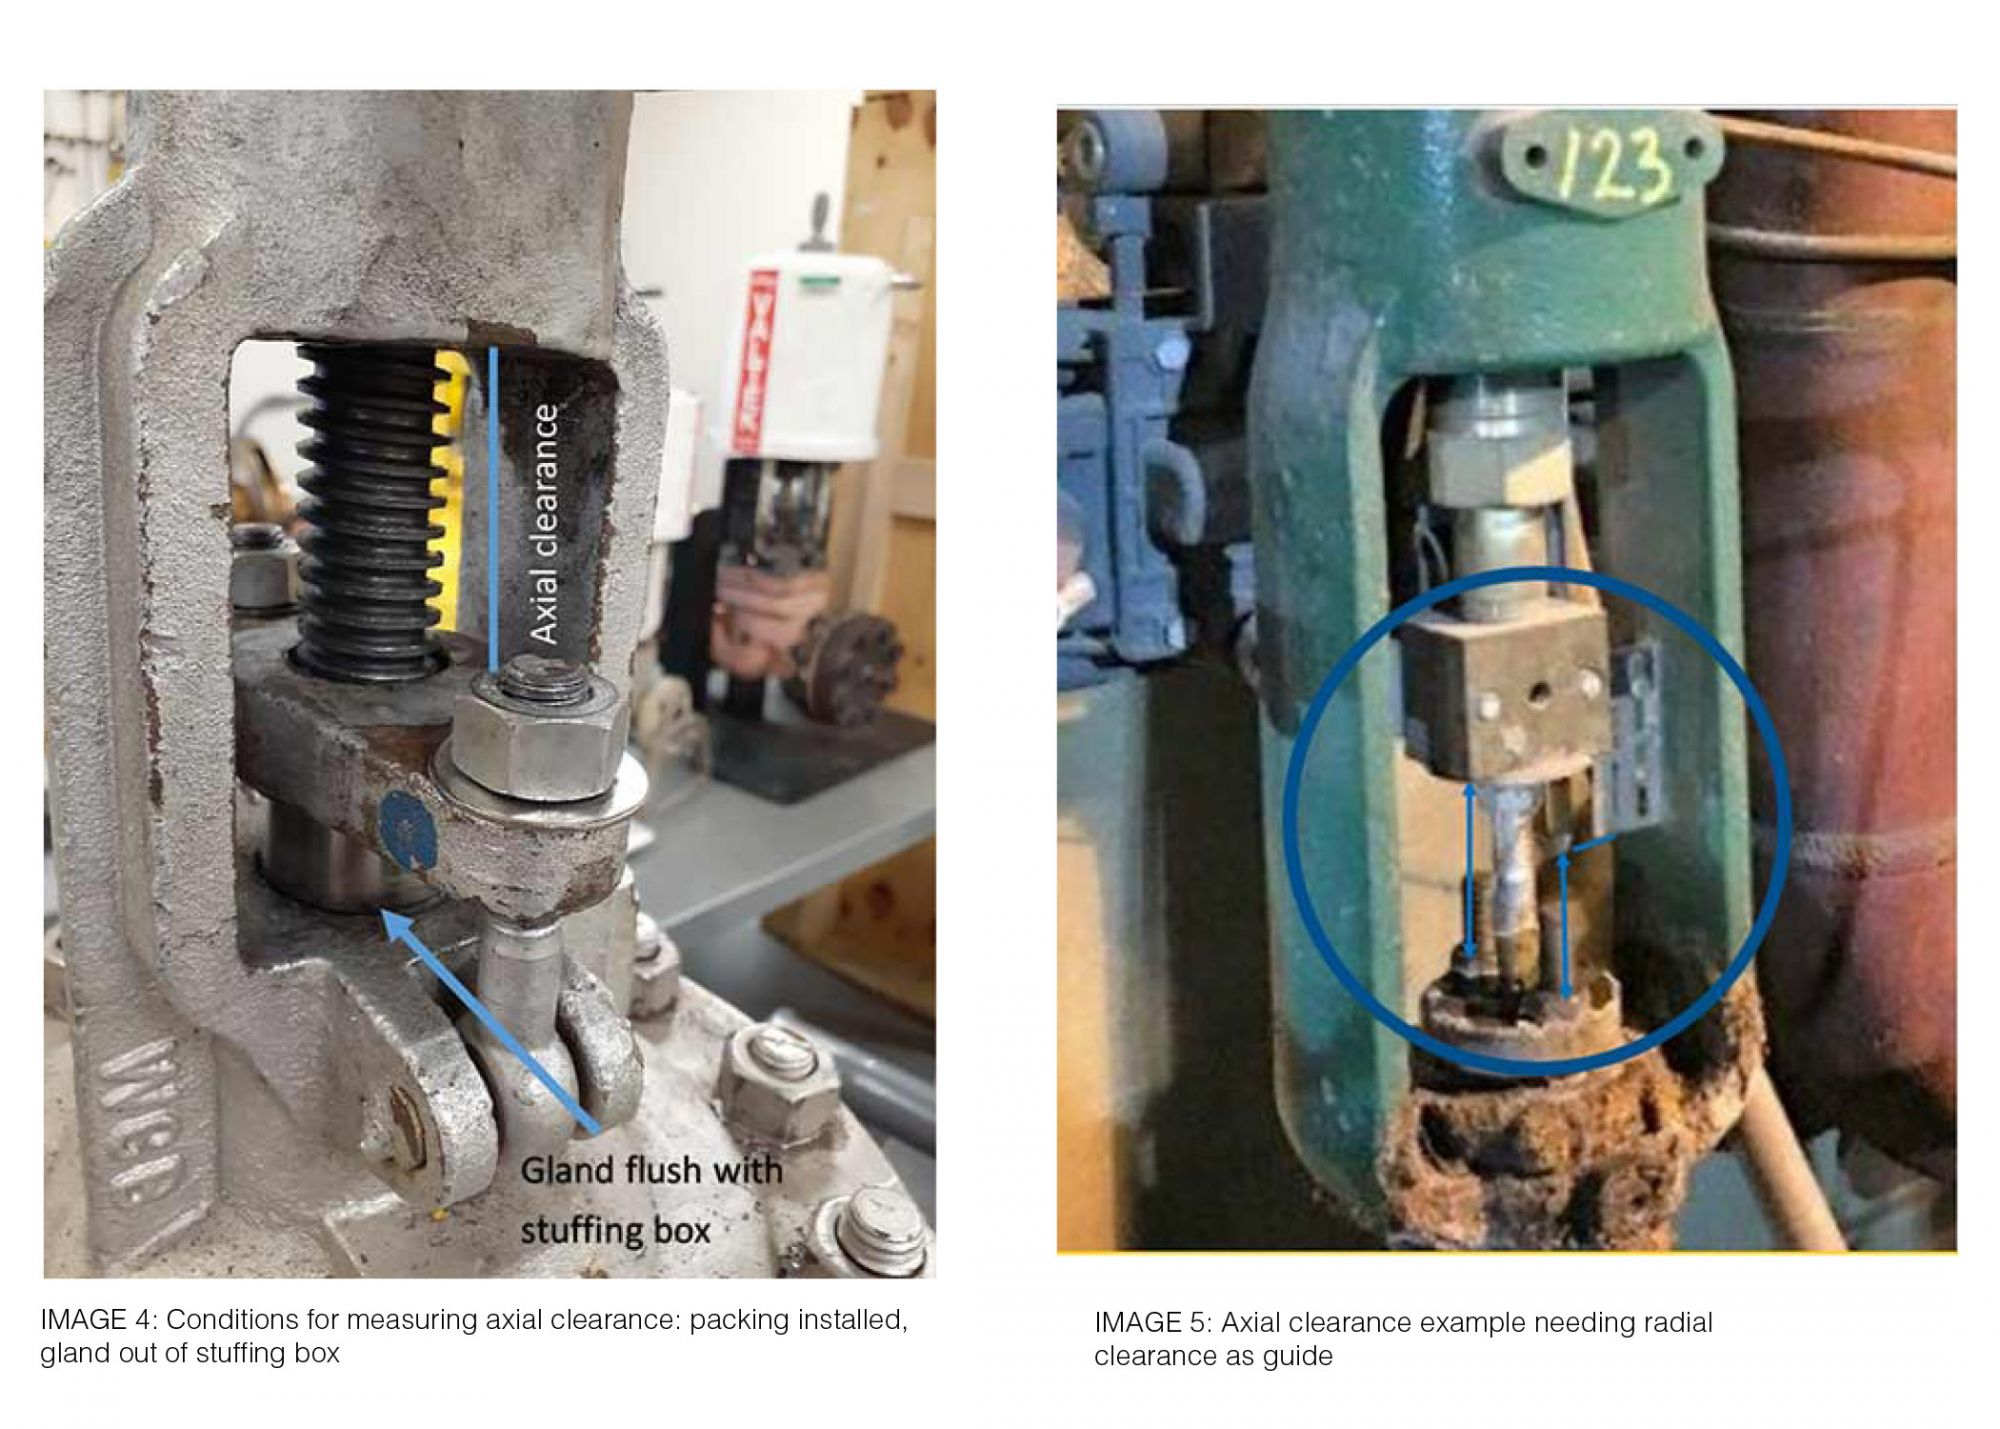 IMAGE 4: Conditions for measuring axial clearance: packing installed, gland out of stuffing box and IMAGE 5: Axial clearance example needing radial clearance as guide